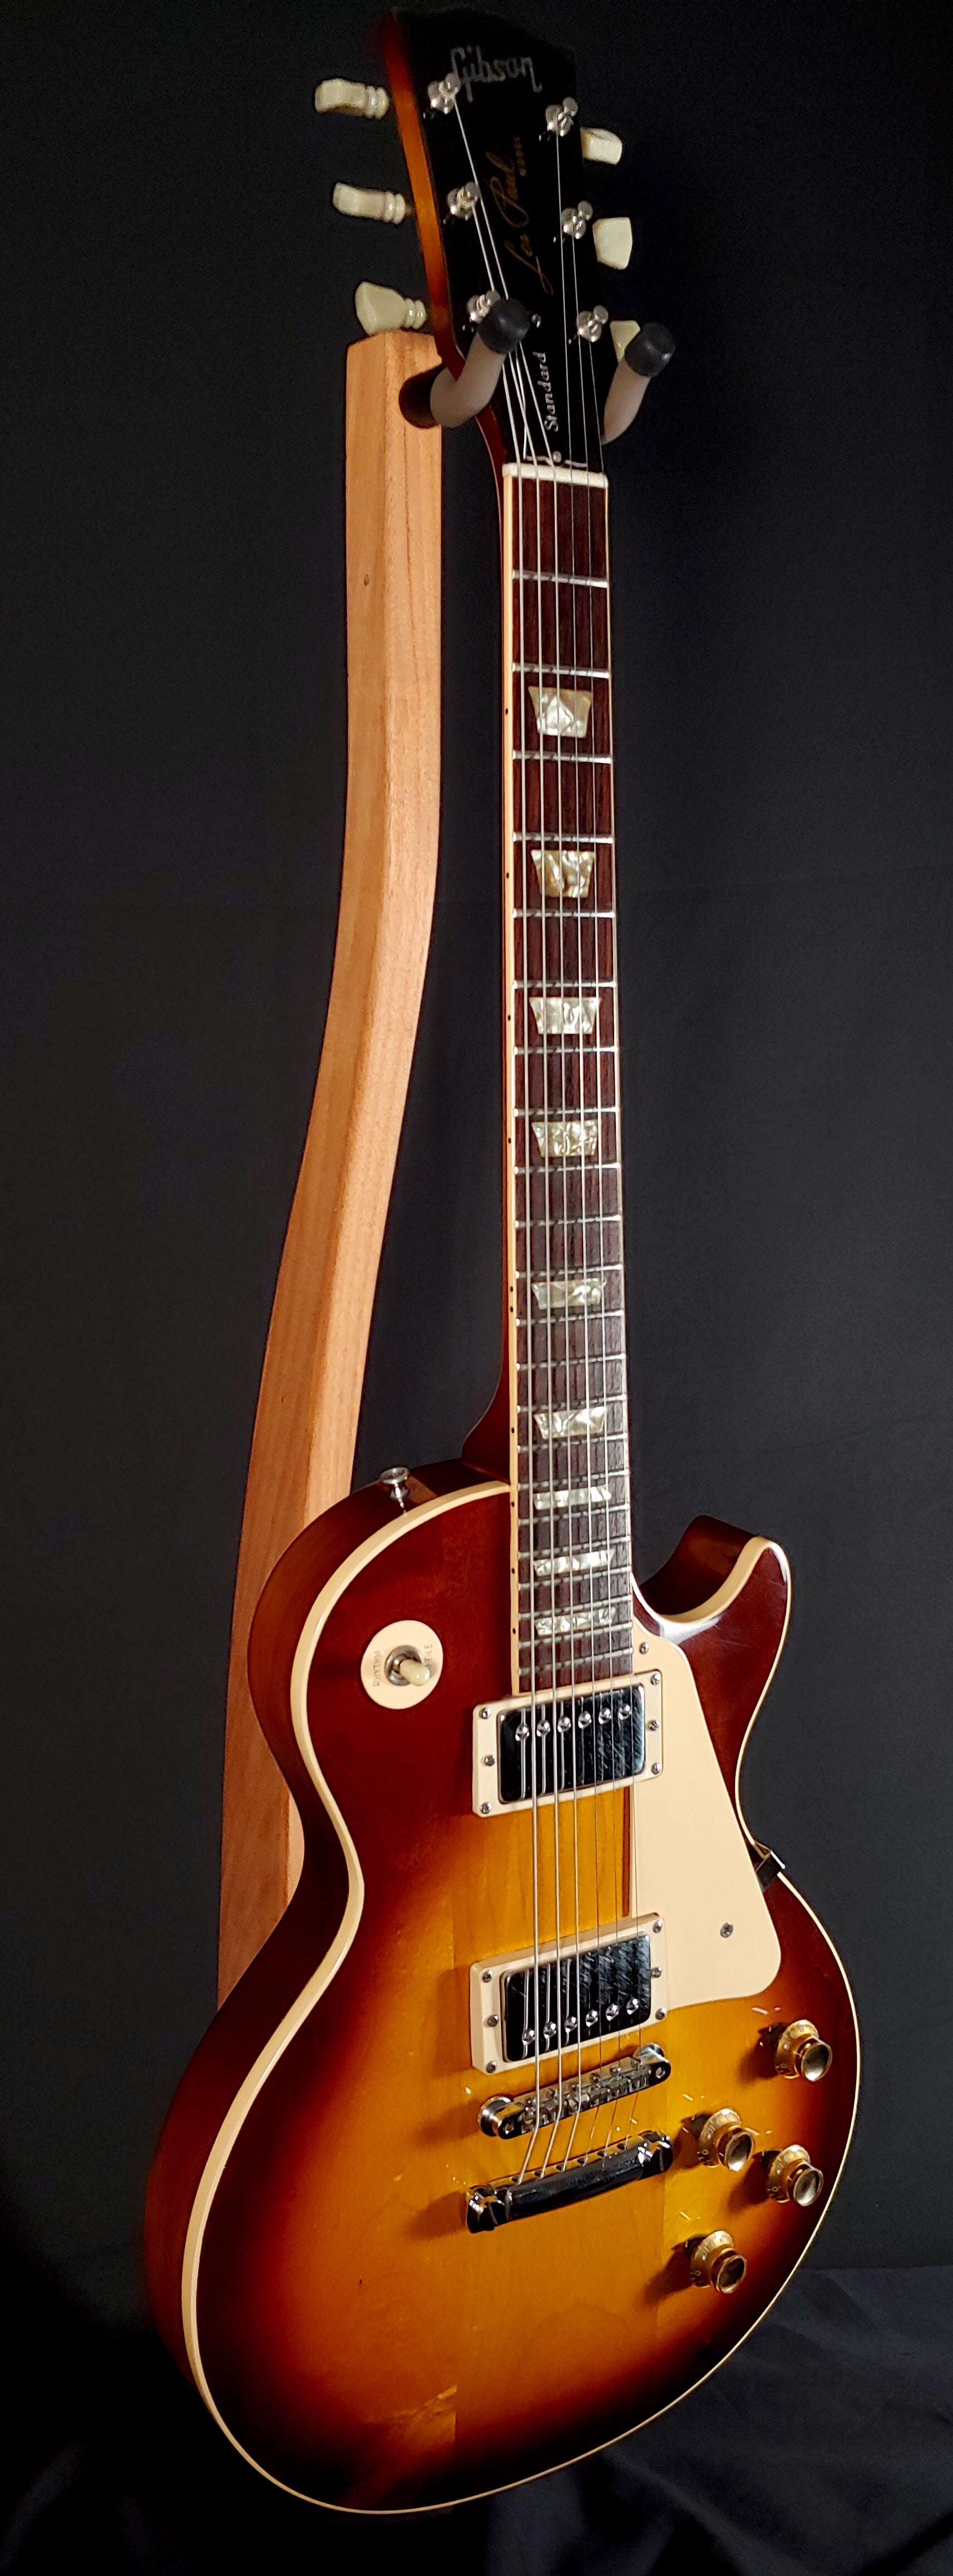 *****SOLD**** 1974 Gibson LesPaul Standard Factory Installed Humbuckings